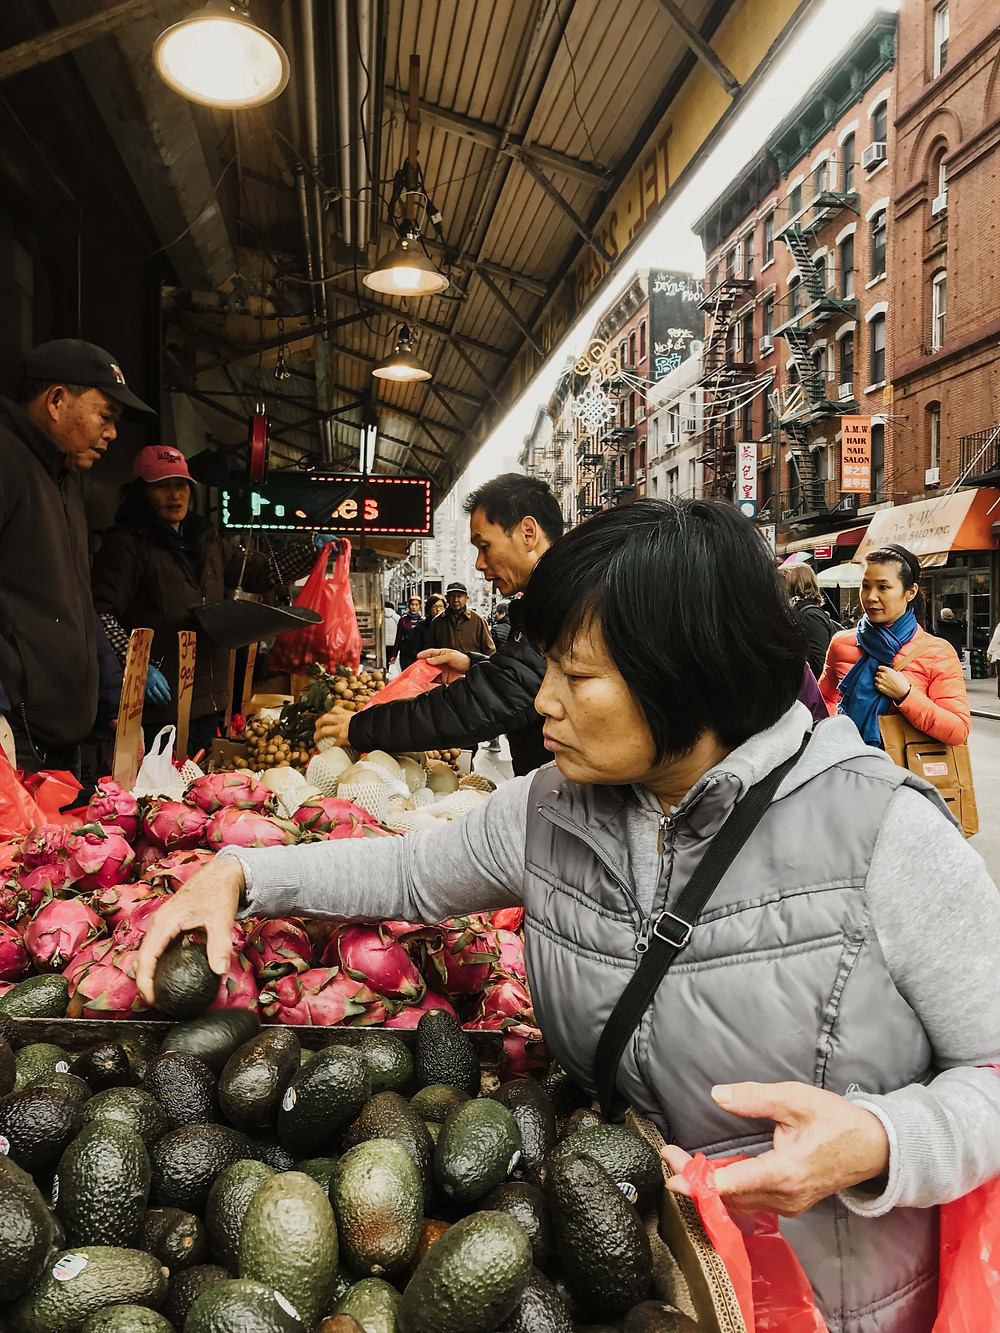 woman grocery shopping for avocados at an outdoor market